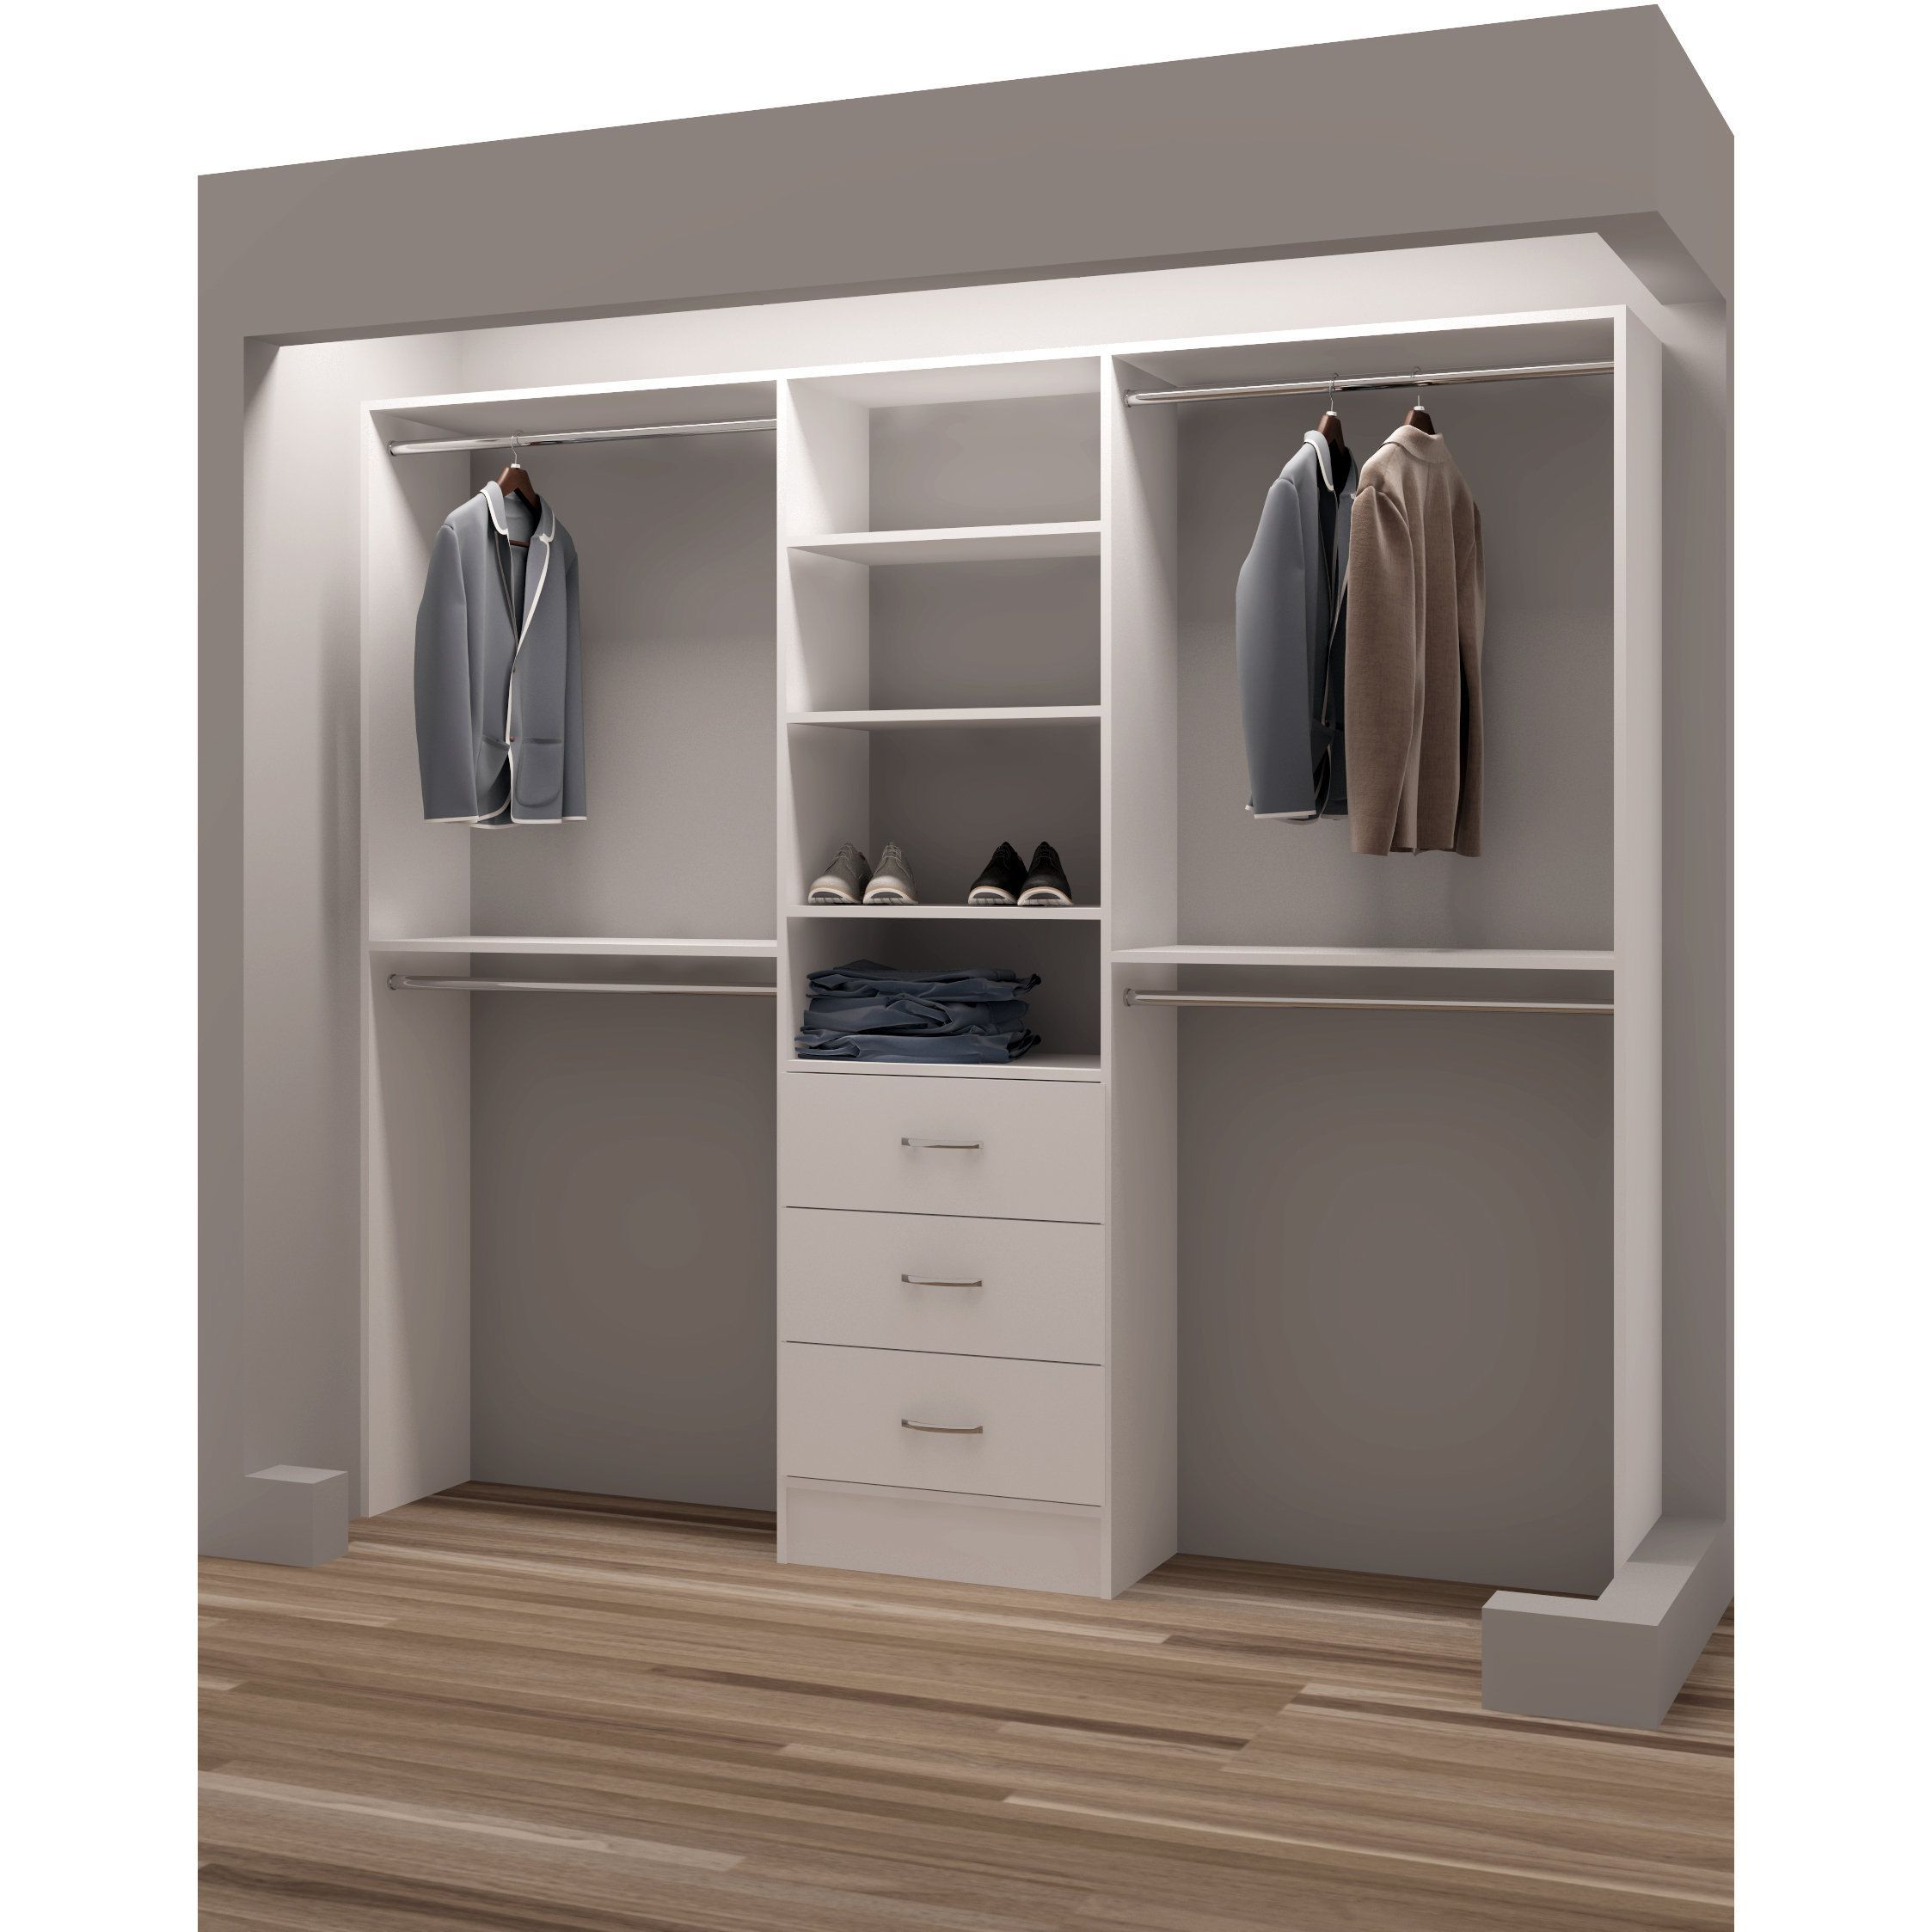 creating for placed organizer ideas furniture brown in hanging interior wall plus house extraordinary the with closet drawers tidy clothes on and wooden a pole walk organizers white shelves